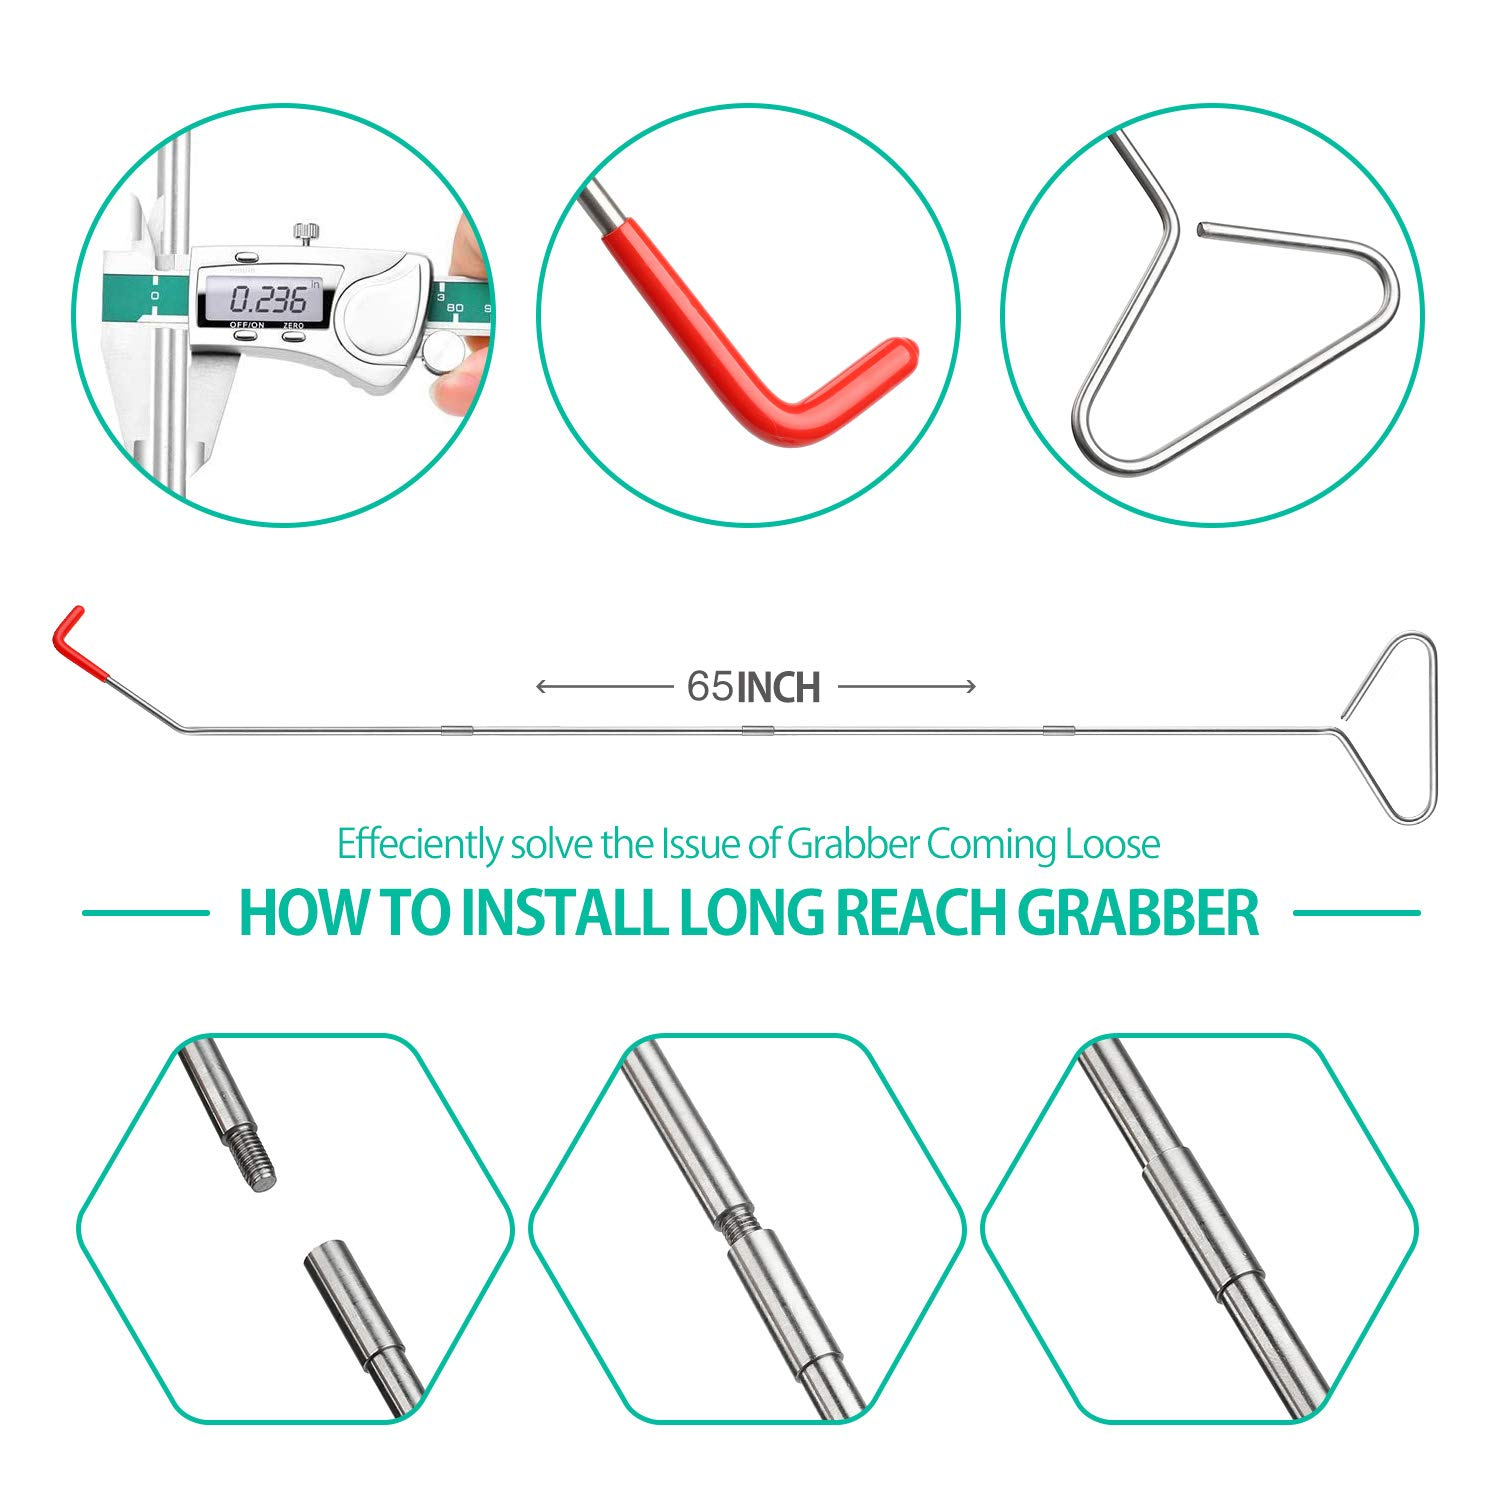 10PCS Automotive Long Reach Grabber Automotive Kit Long Reach Grabber Car Essential Kit Long Reach Tool with Air Pump Bag Non Marring Wedges for Cars /& Trucks